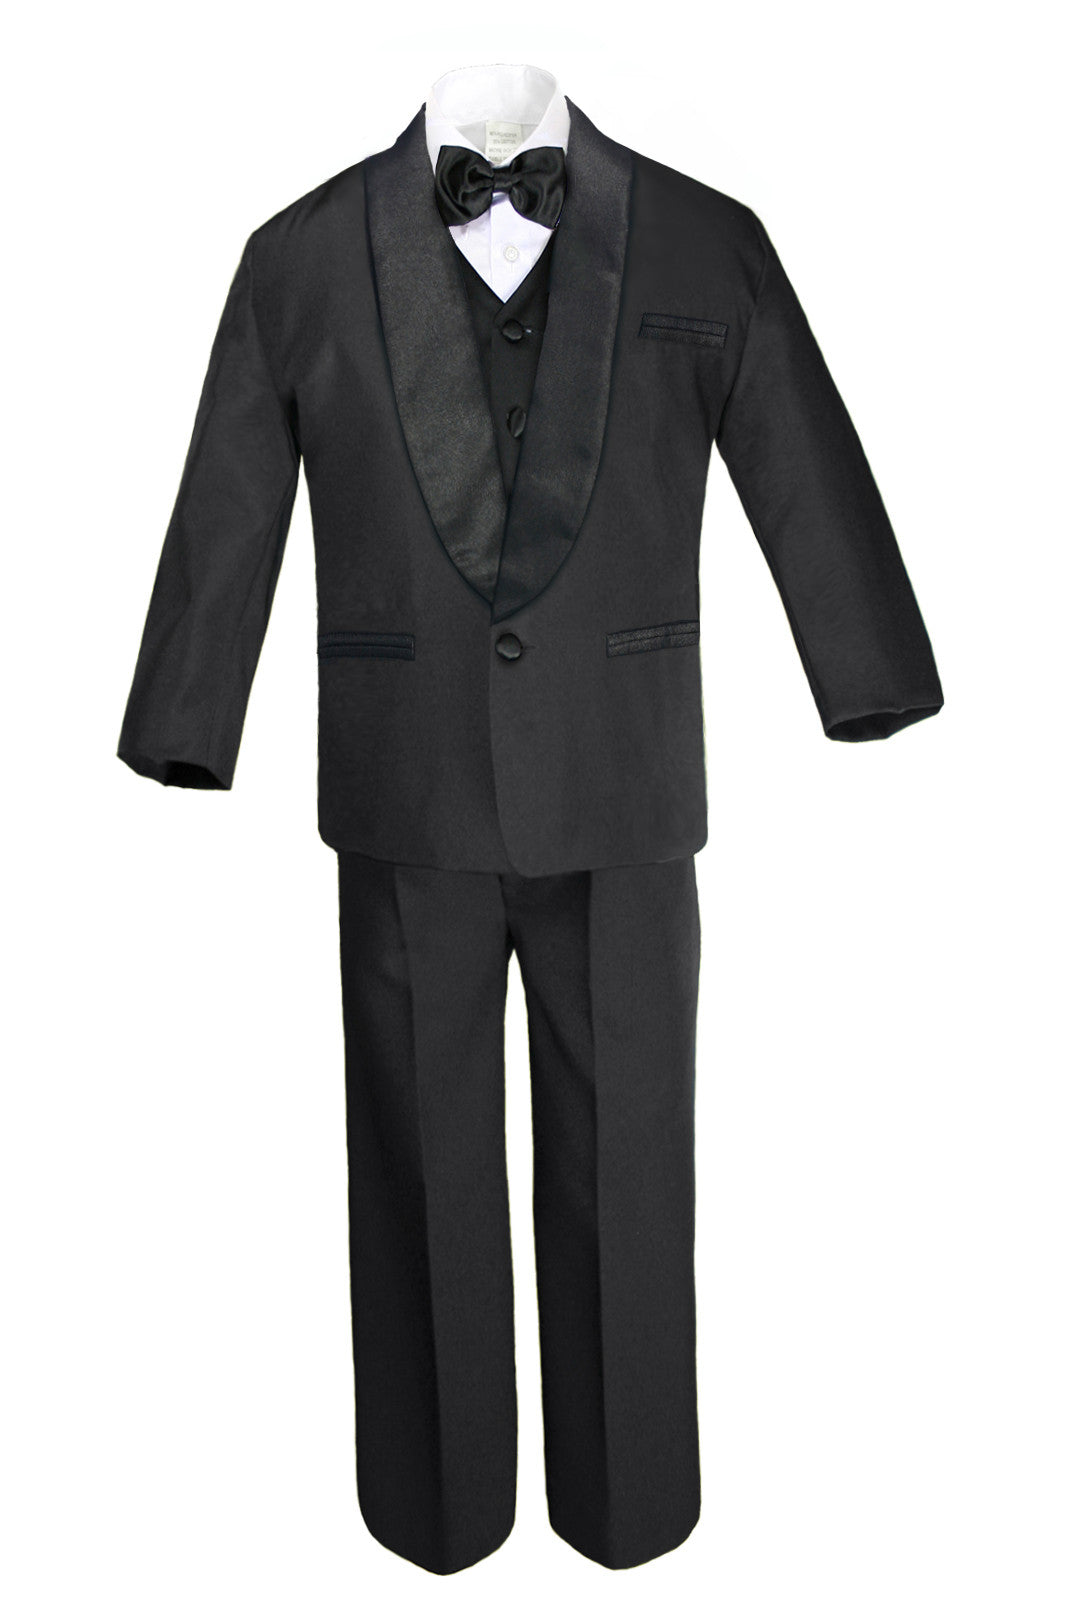 Burgundy Bow Tie S-4T Baby Toddler Boy Black Formal Wedding Party Suit Tuxedo